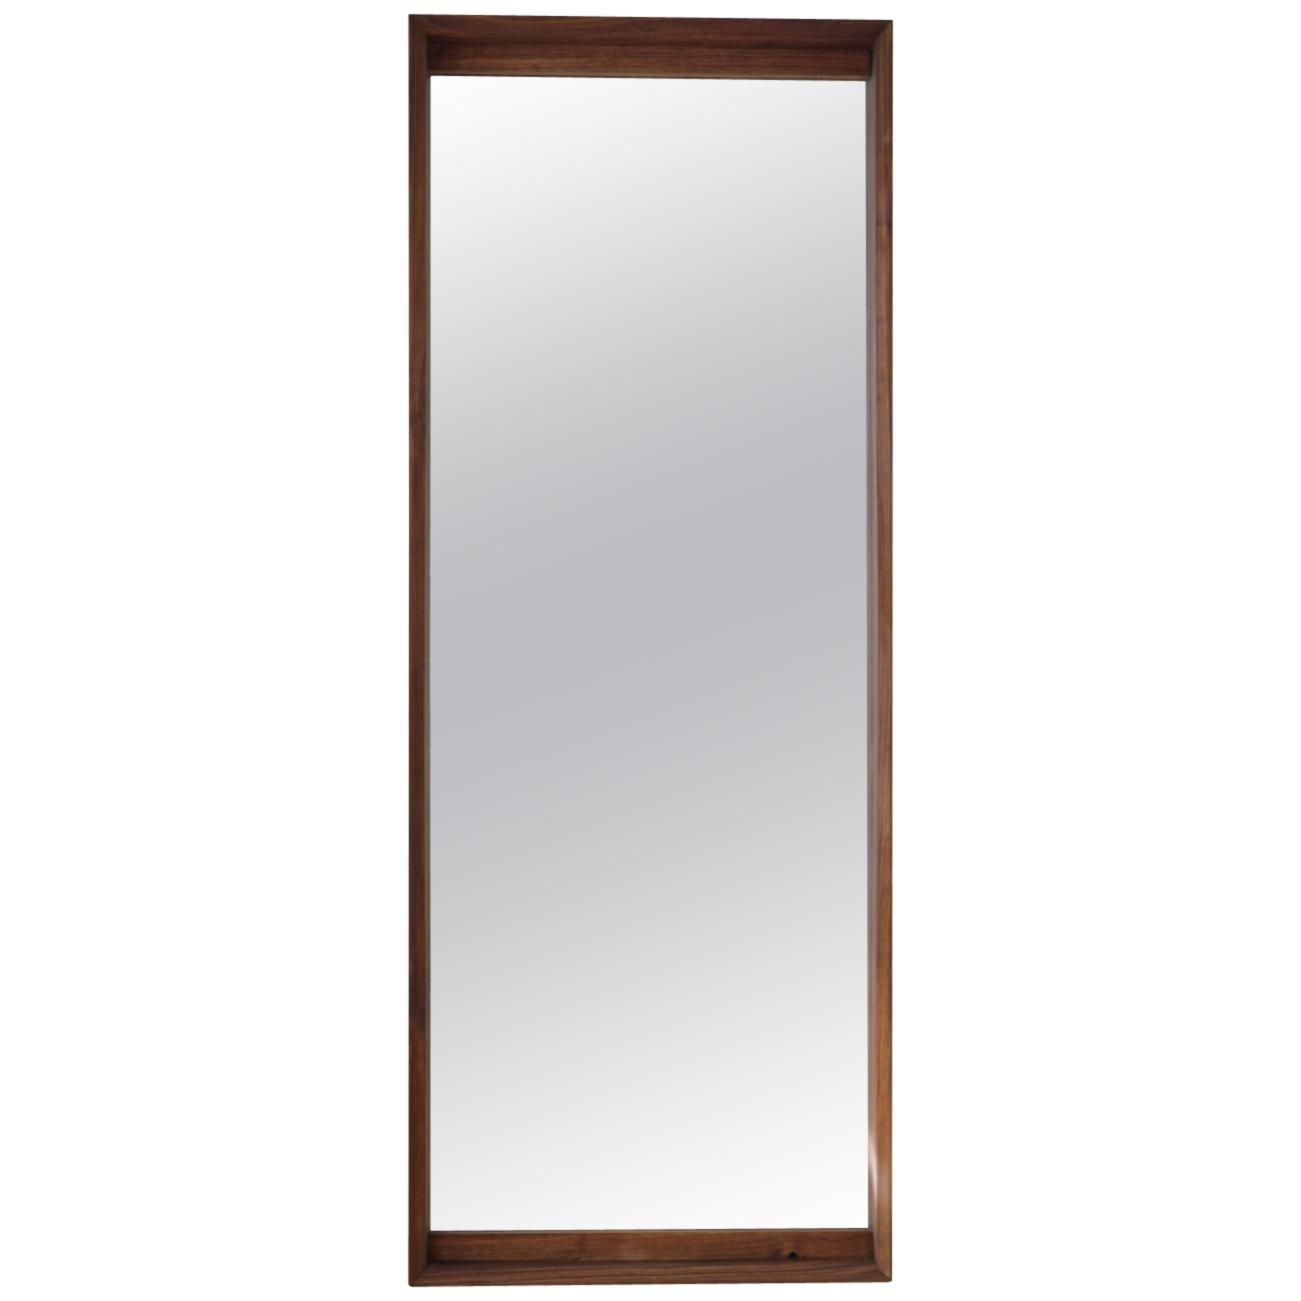 Handmade Large Format Floor Standing Walnut Mirror